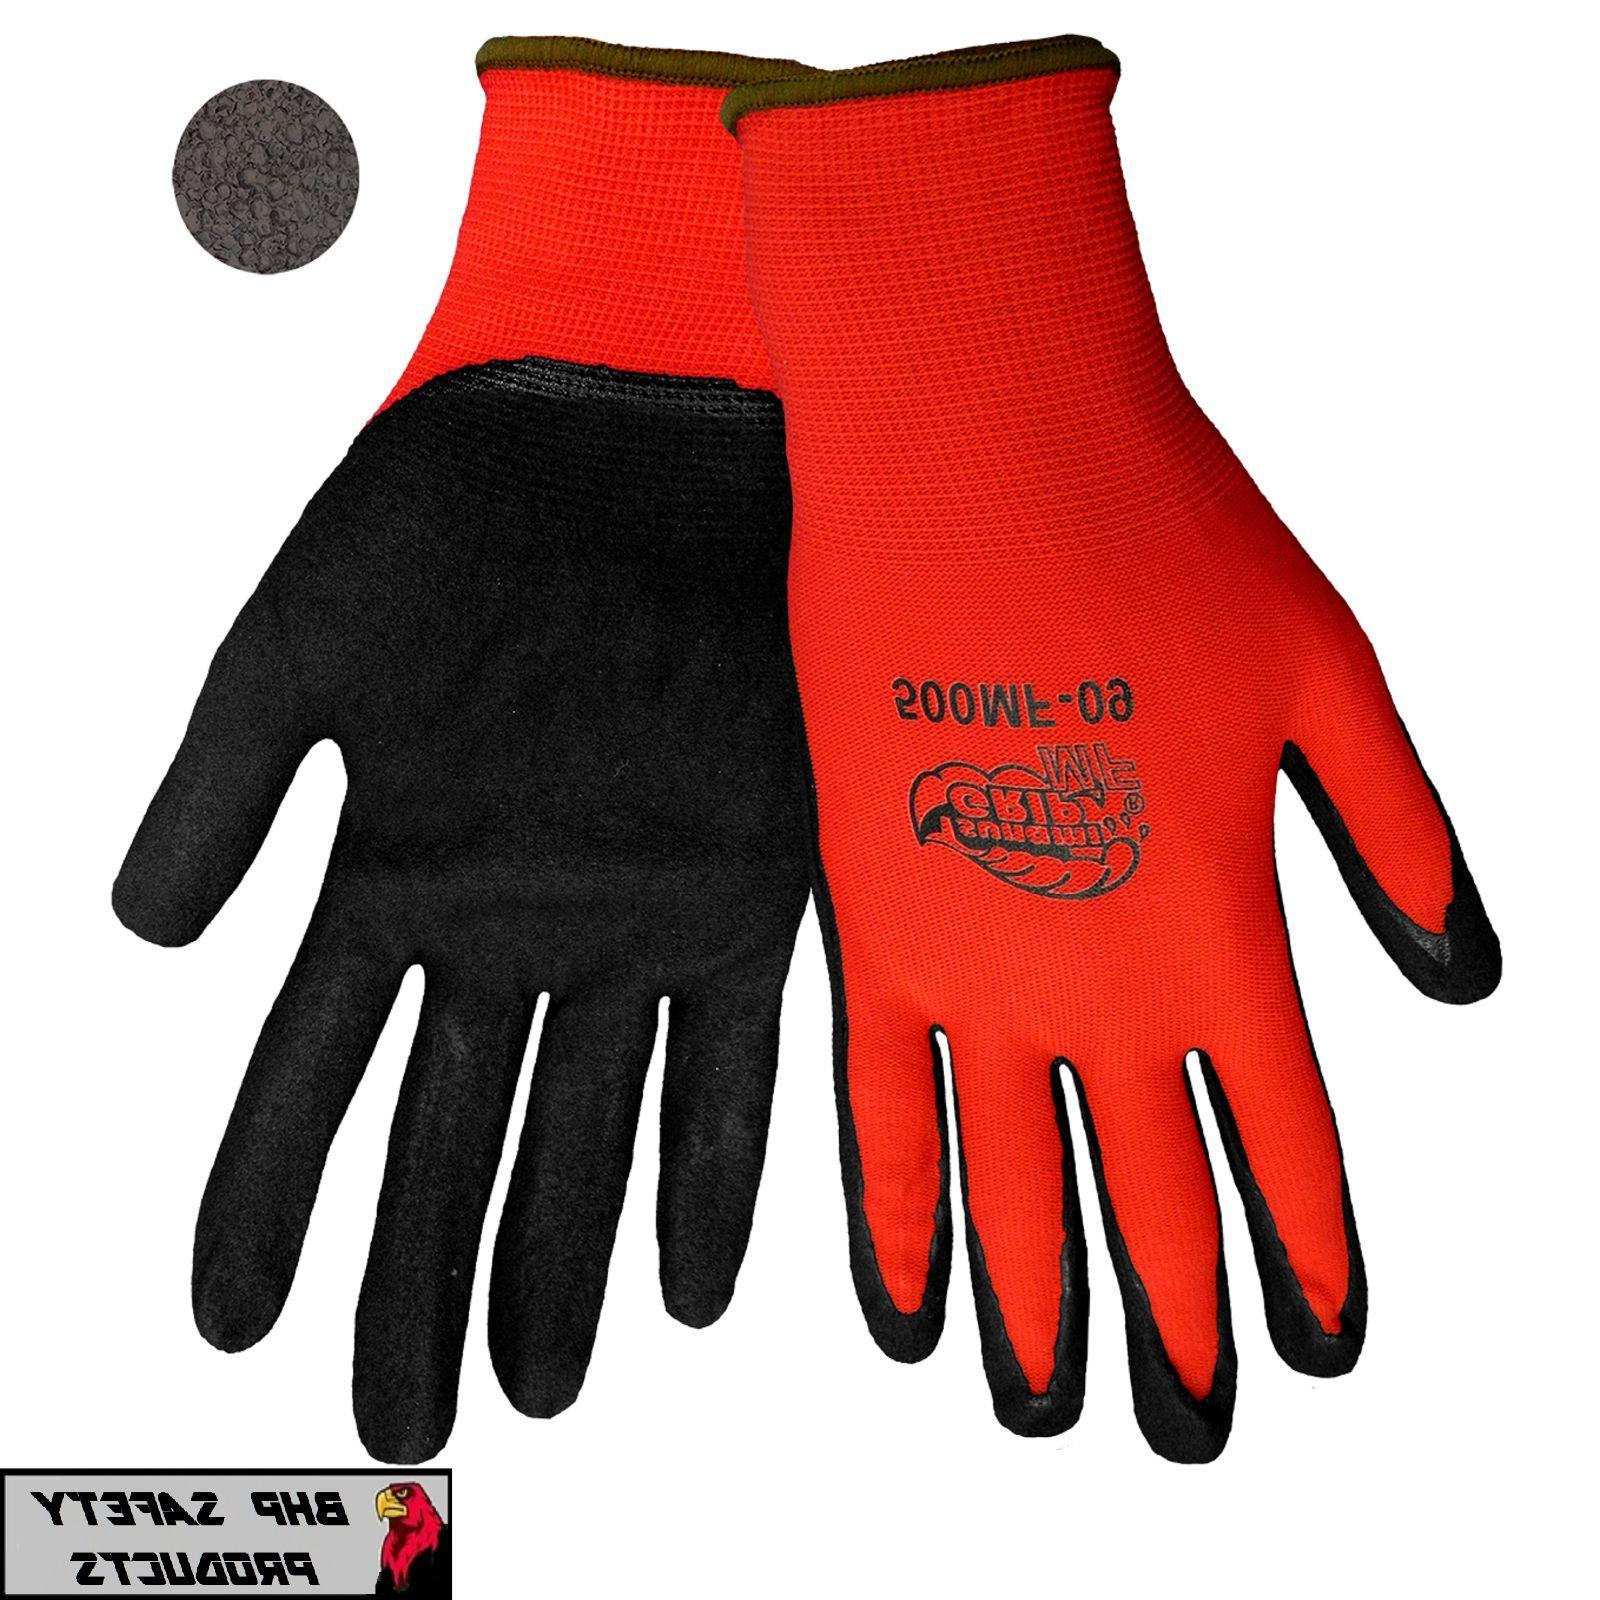 GLOBAL TSUNAMI GRIP NITRILE COATED MECHANICS WORK GLOVES SZ